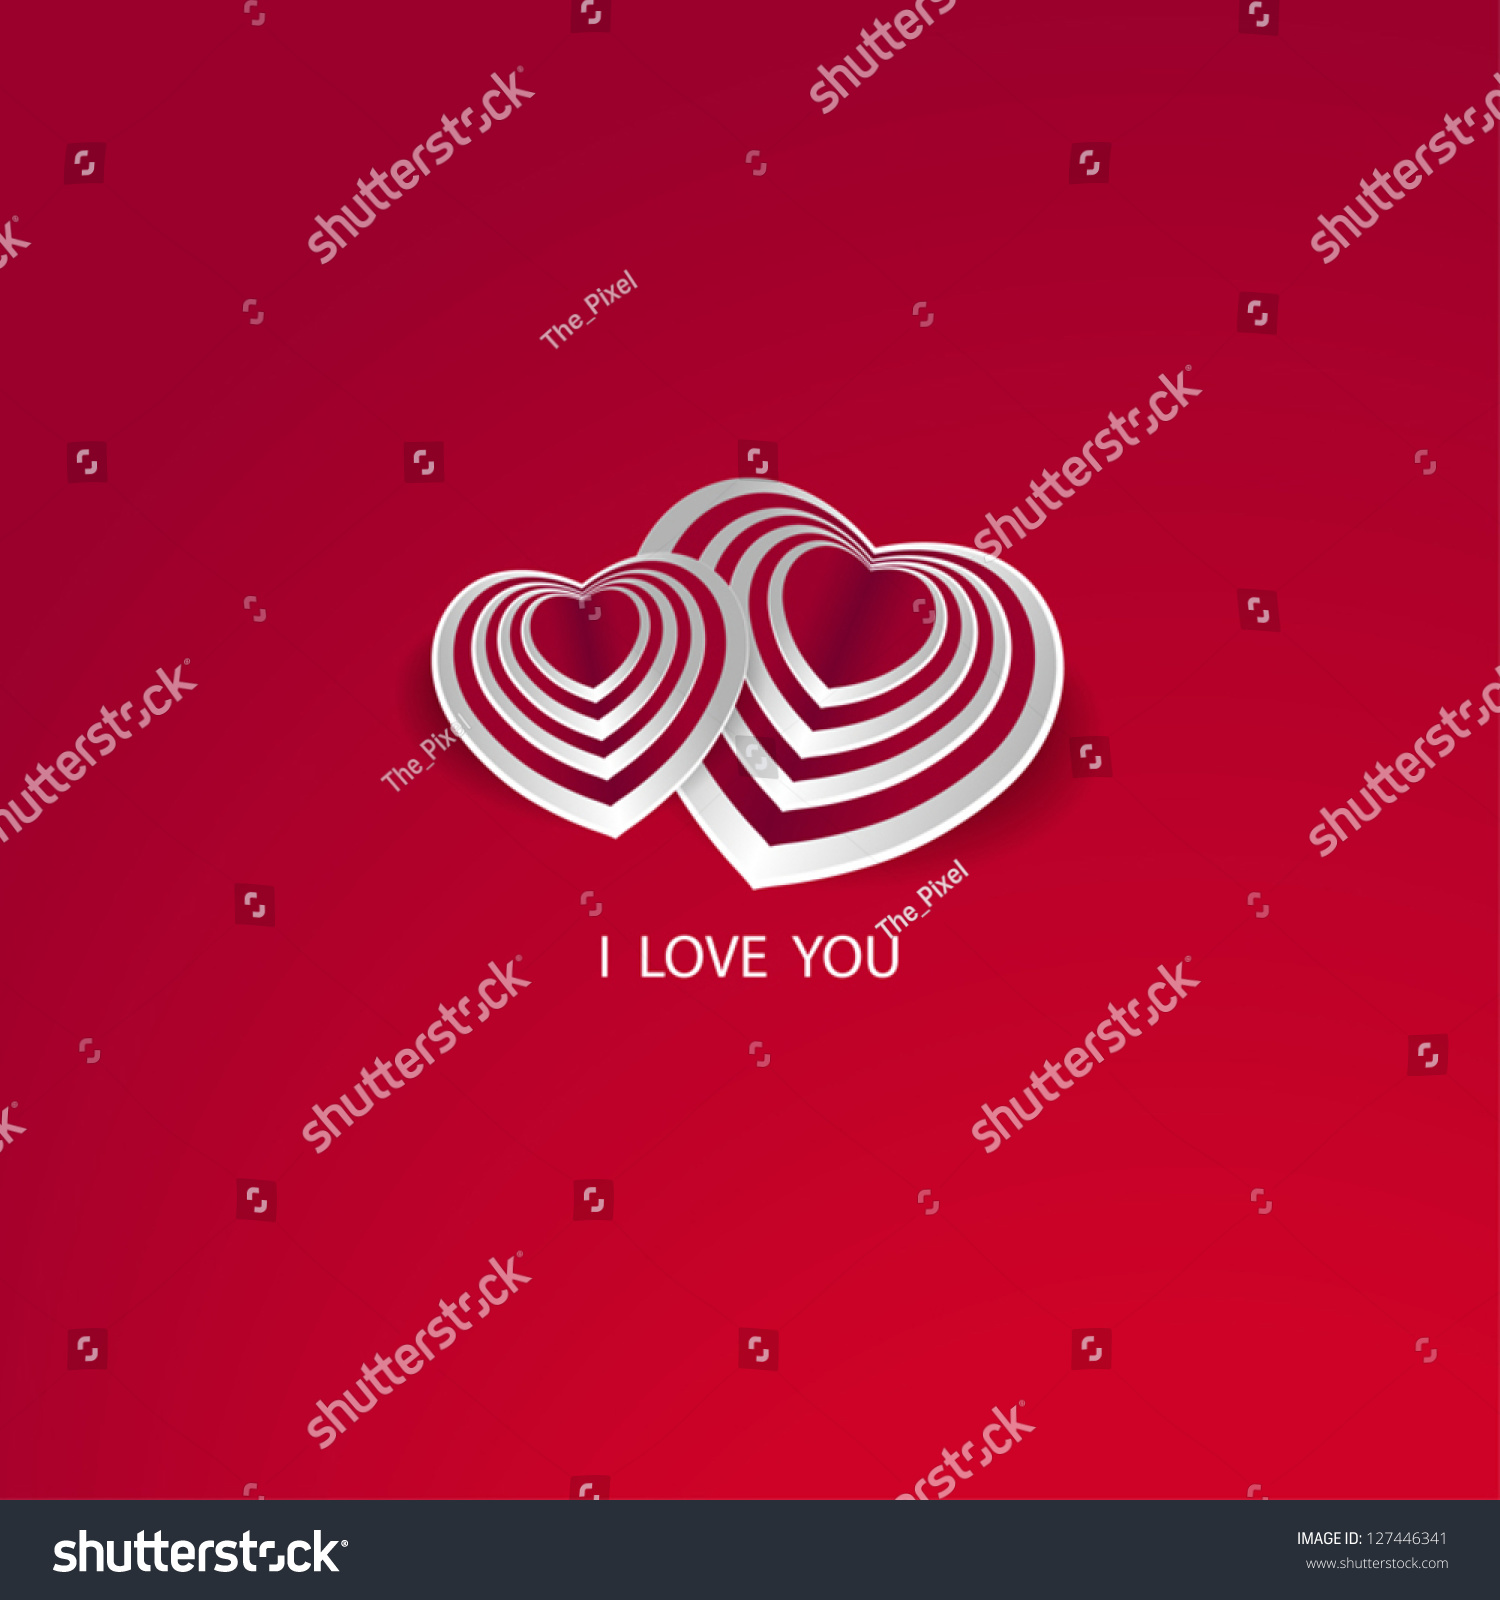 Valentines Card With Text I Love You And Heart Shape Symbol With